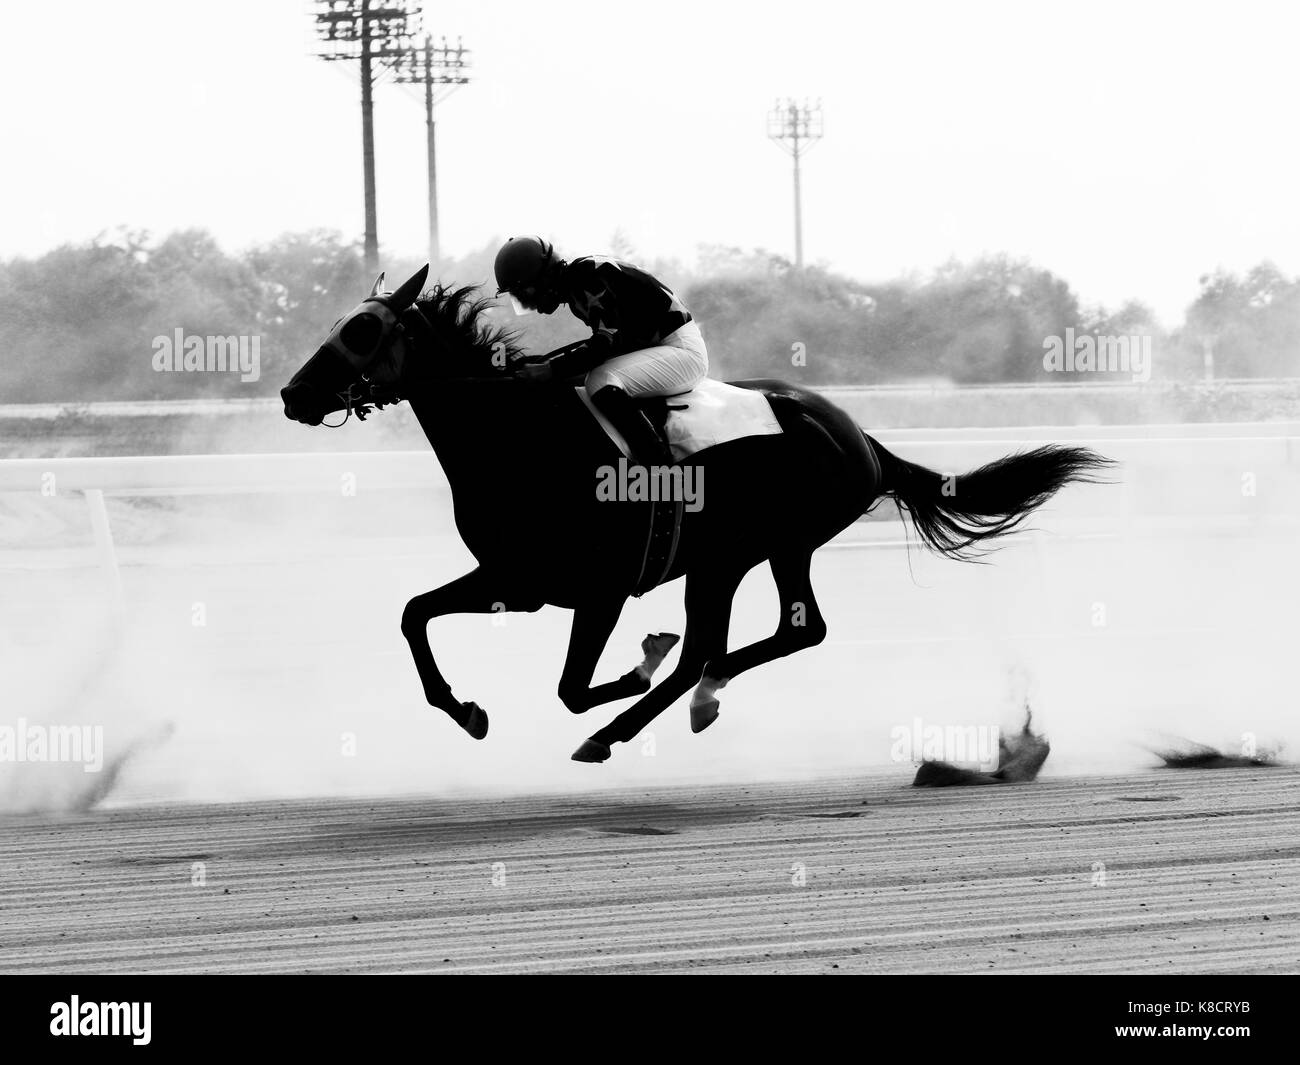 Thoroughbred Horse - Stock Image